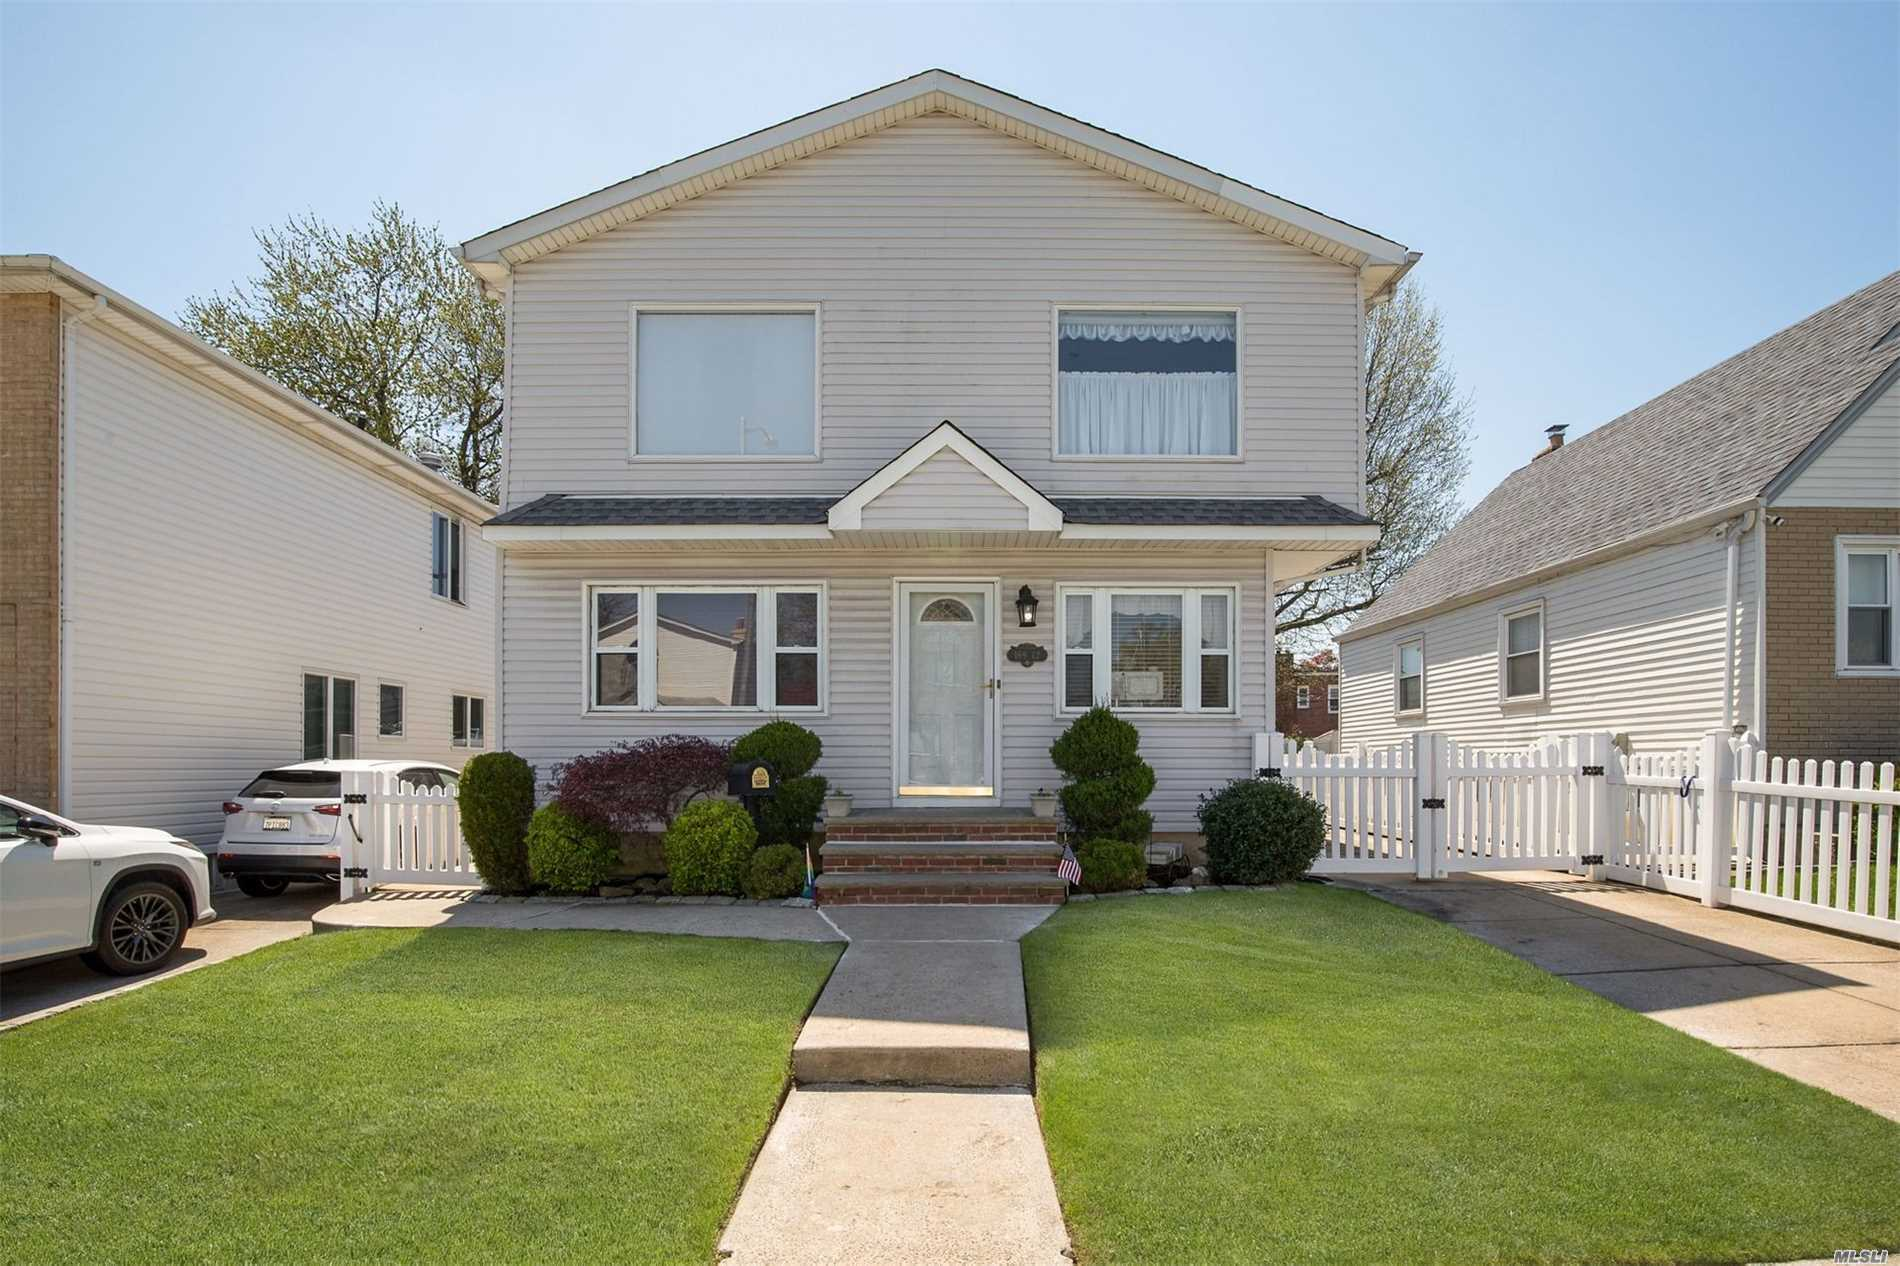 169-12 21 Rd - Whitestone, New York